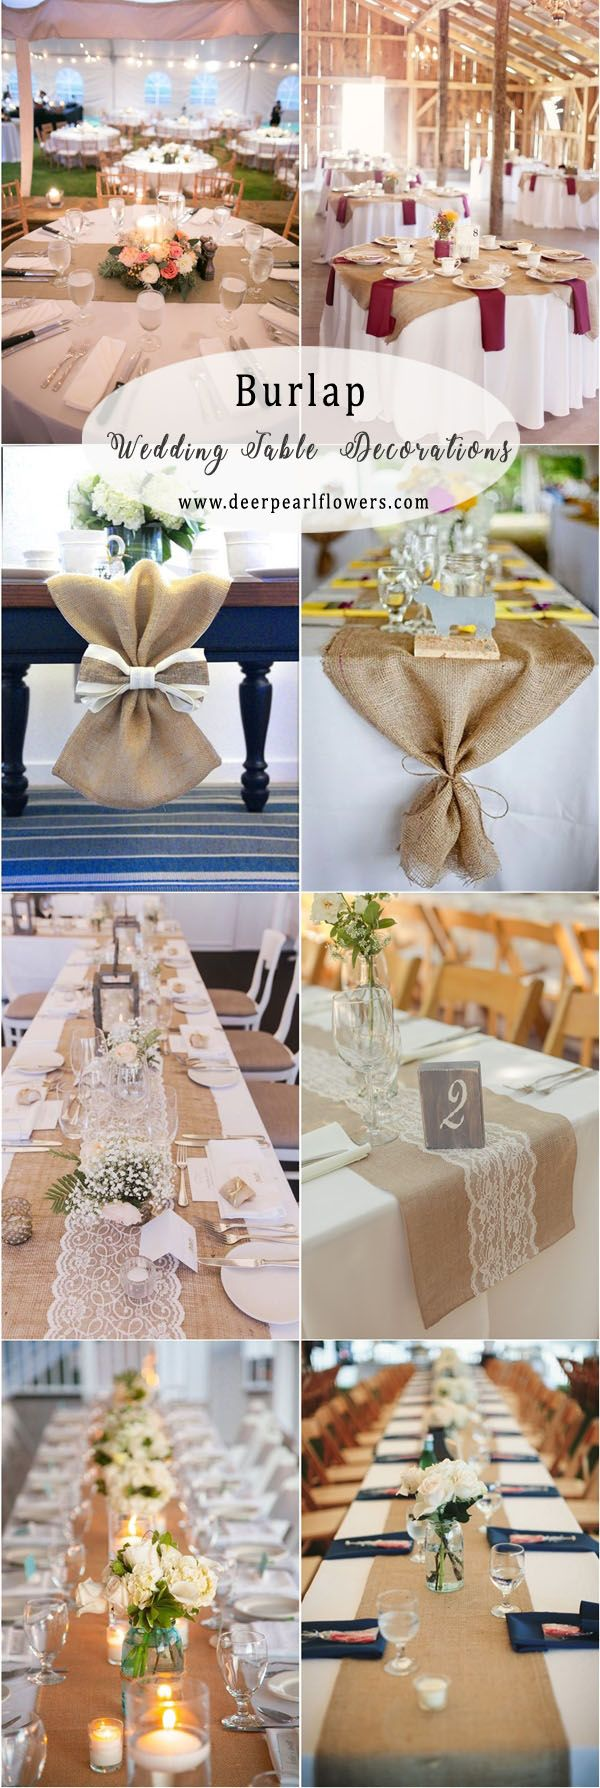 40 Rustic Country Burlap Wedding Decor Ideas